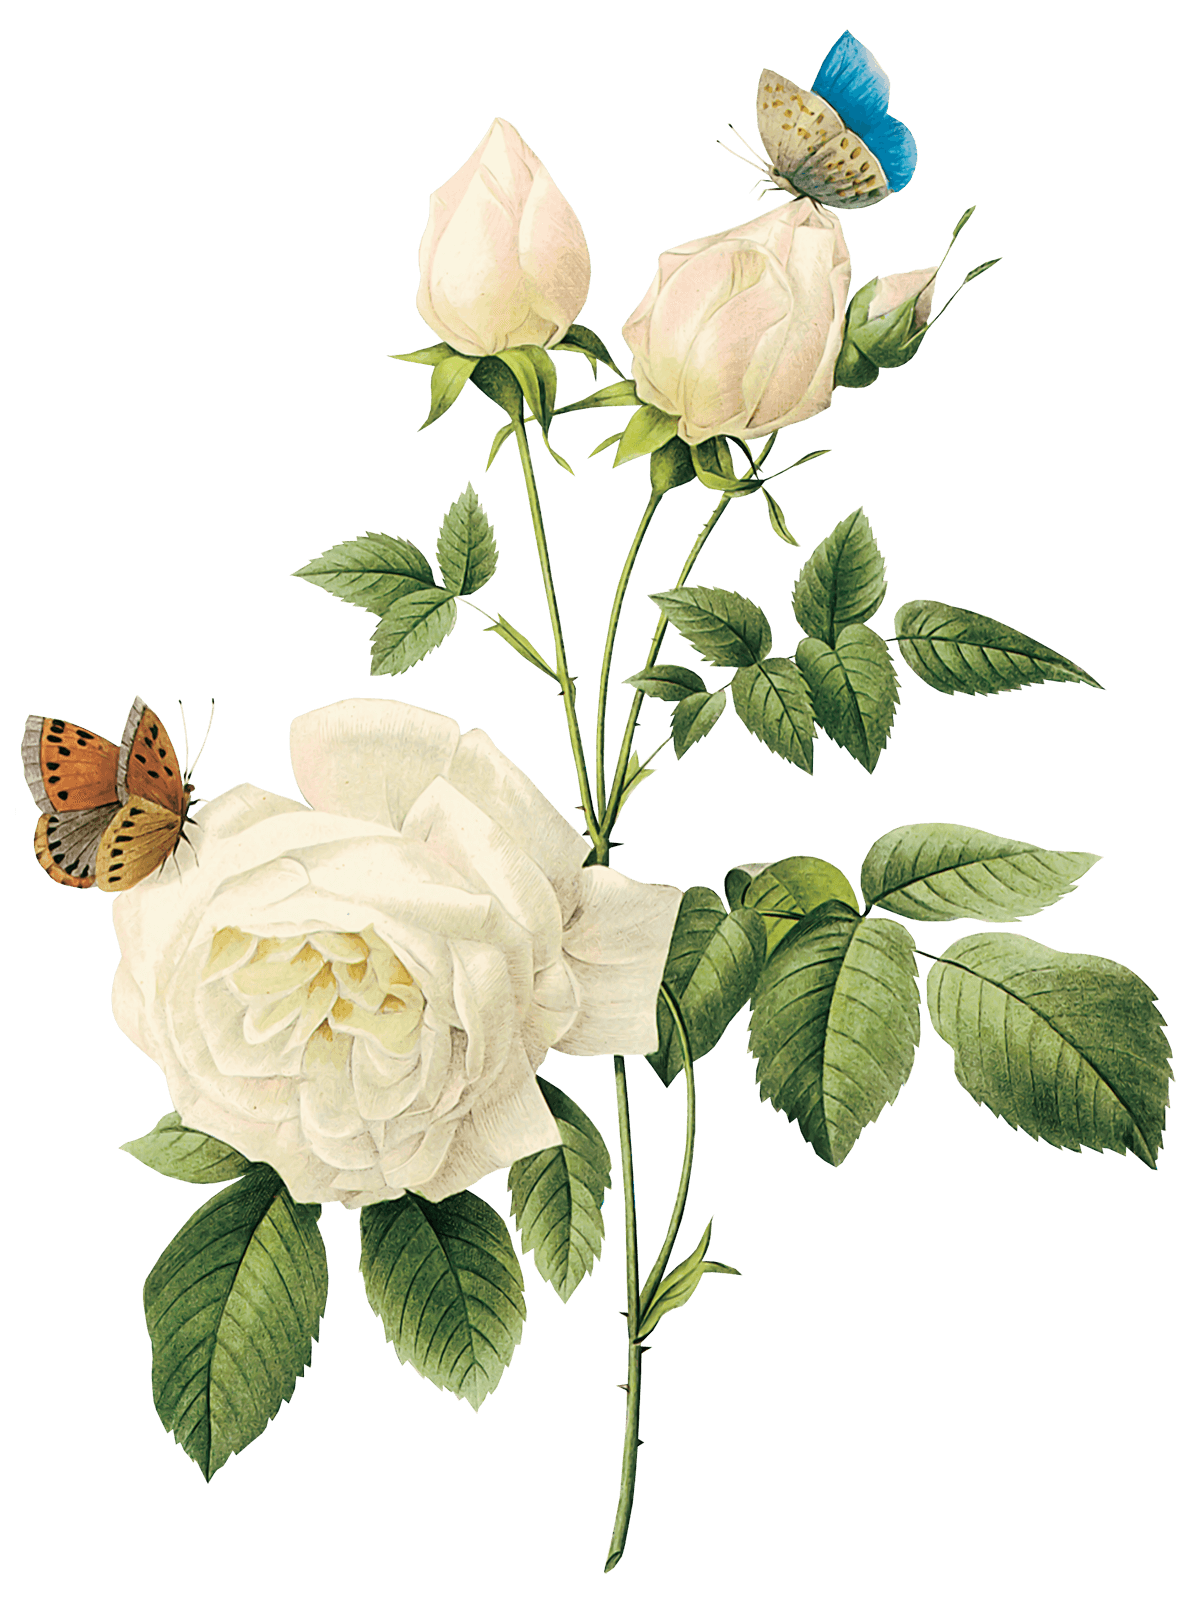 Download White Rose Png Image Flower White Rose Png Picture HQ PNG Image   FreePNGImg